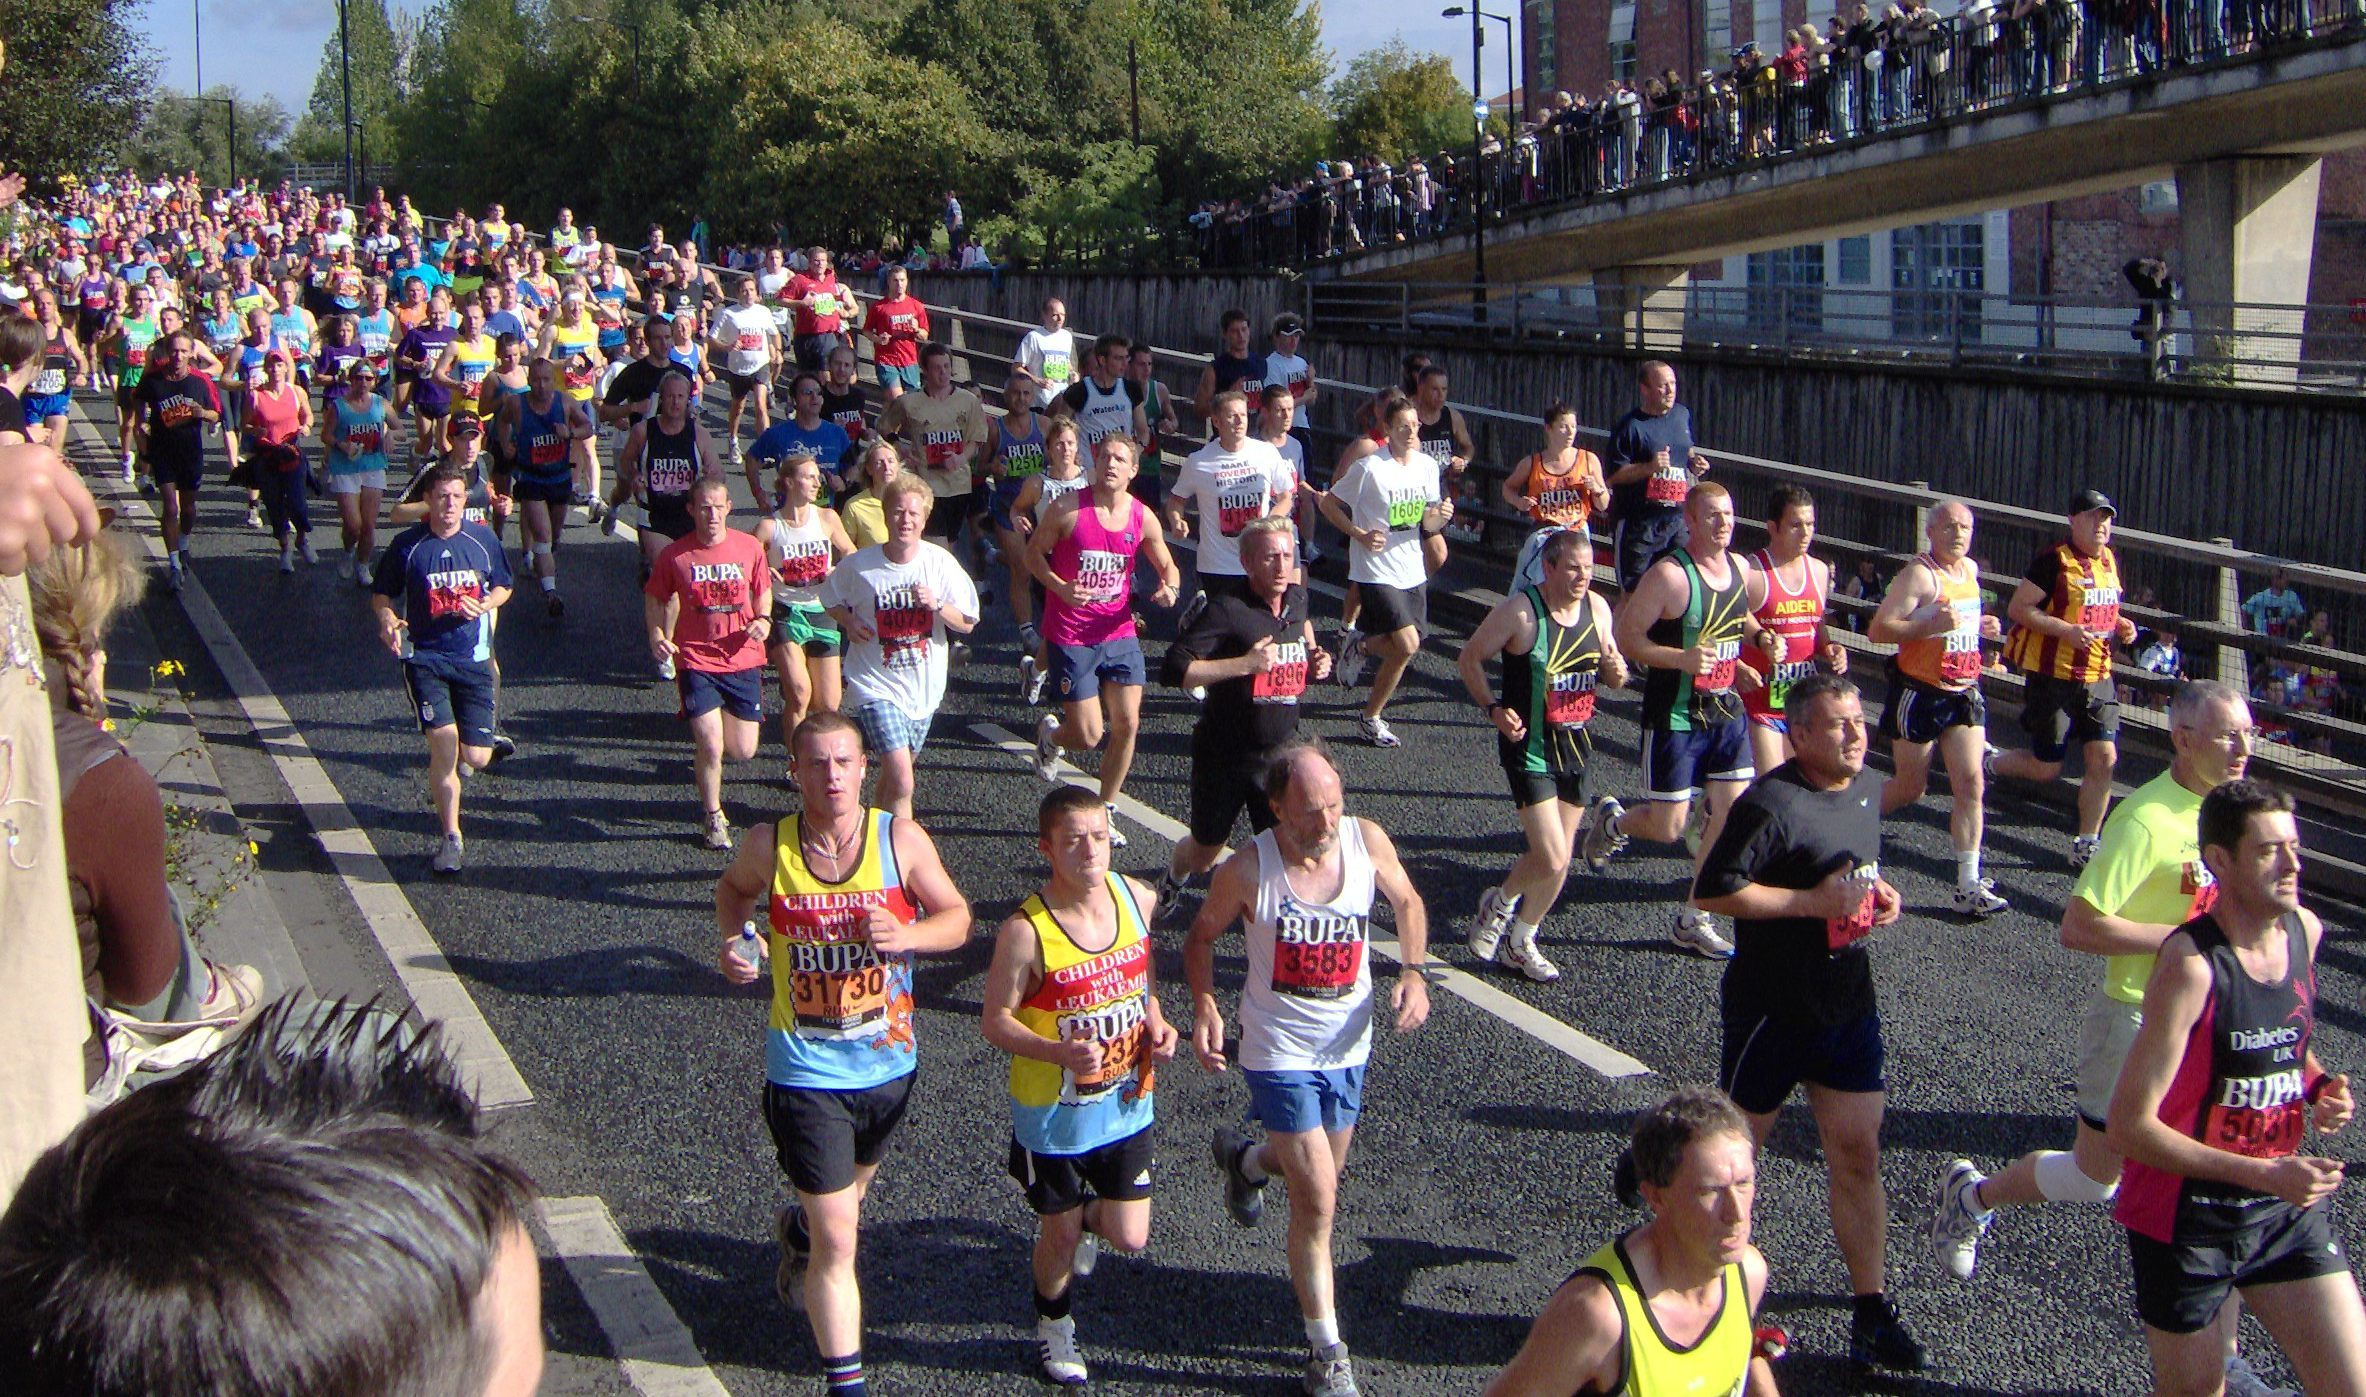 Thousands of people took to the streets for the Great North Run today